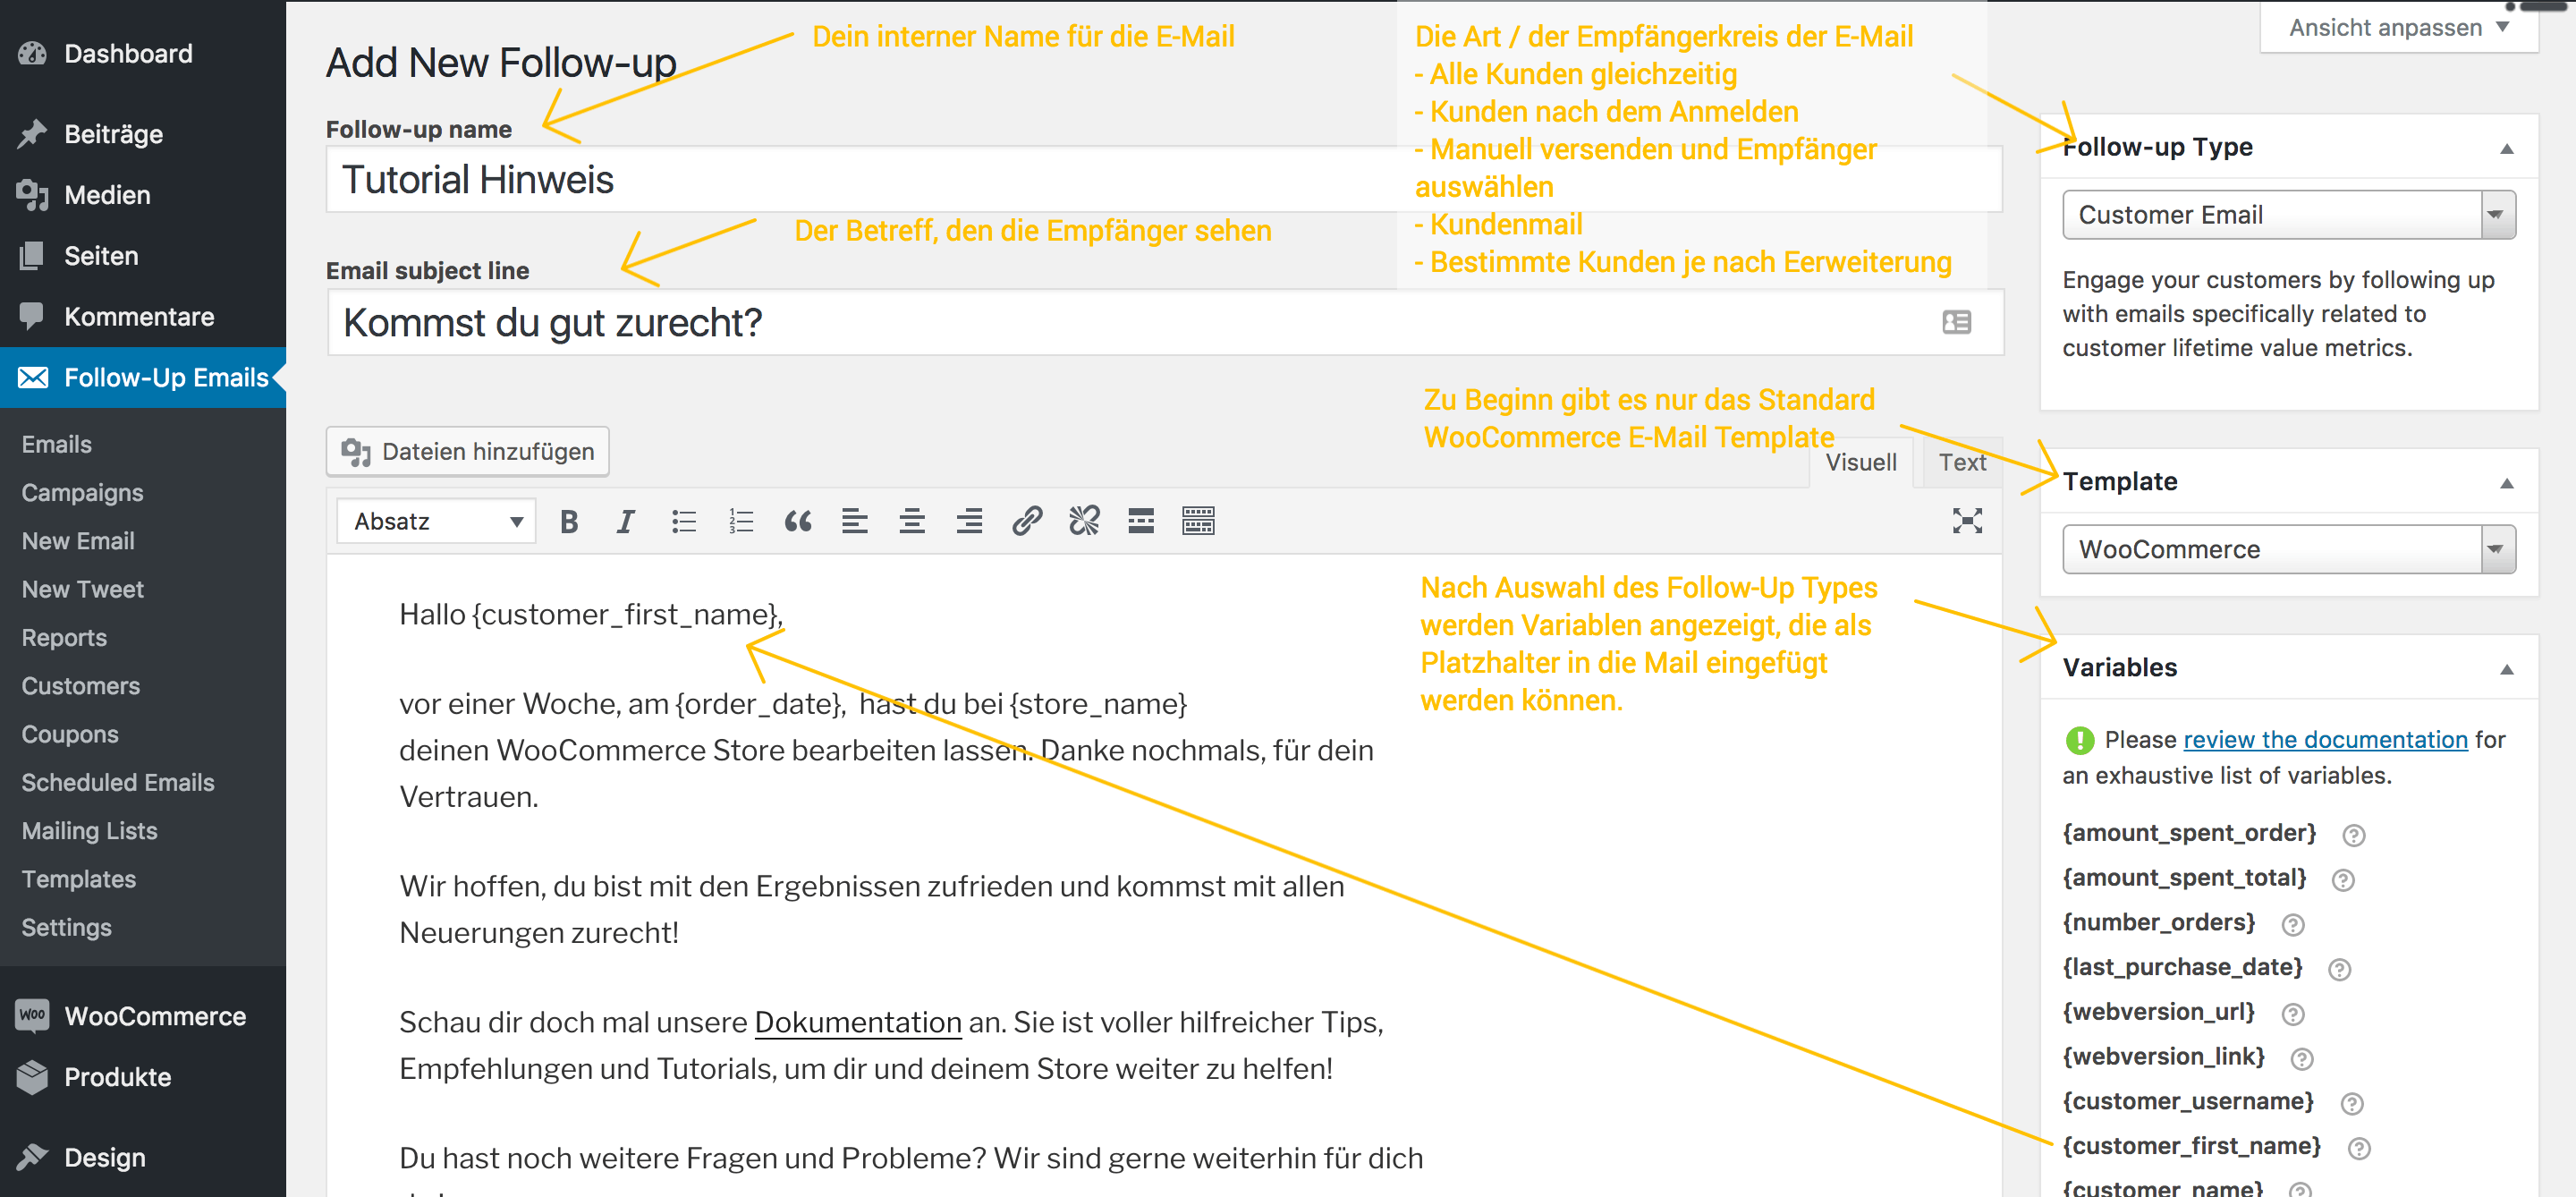 Follow-Ups E-Mail Erstellung